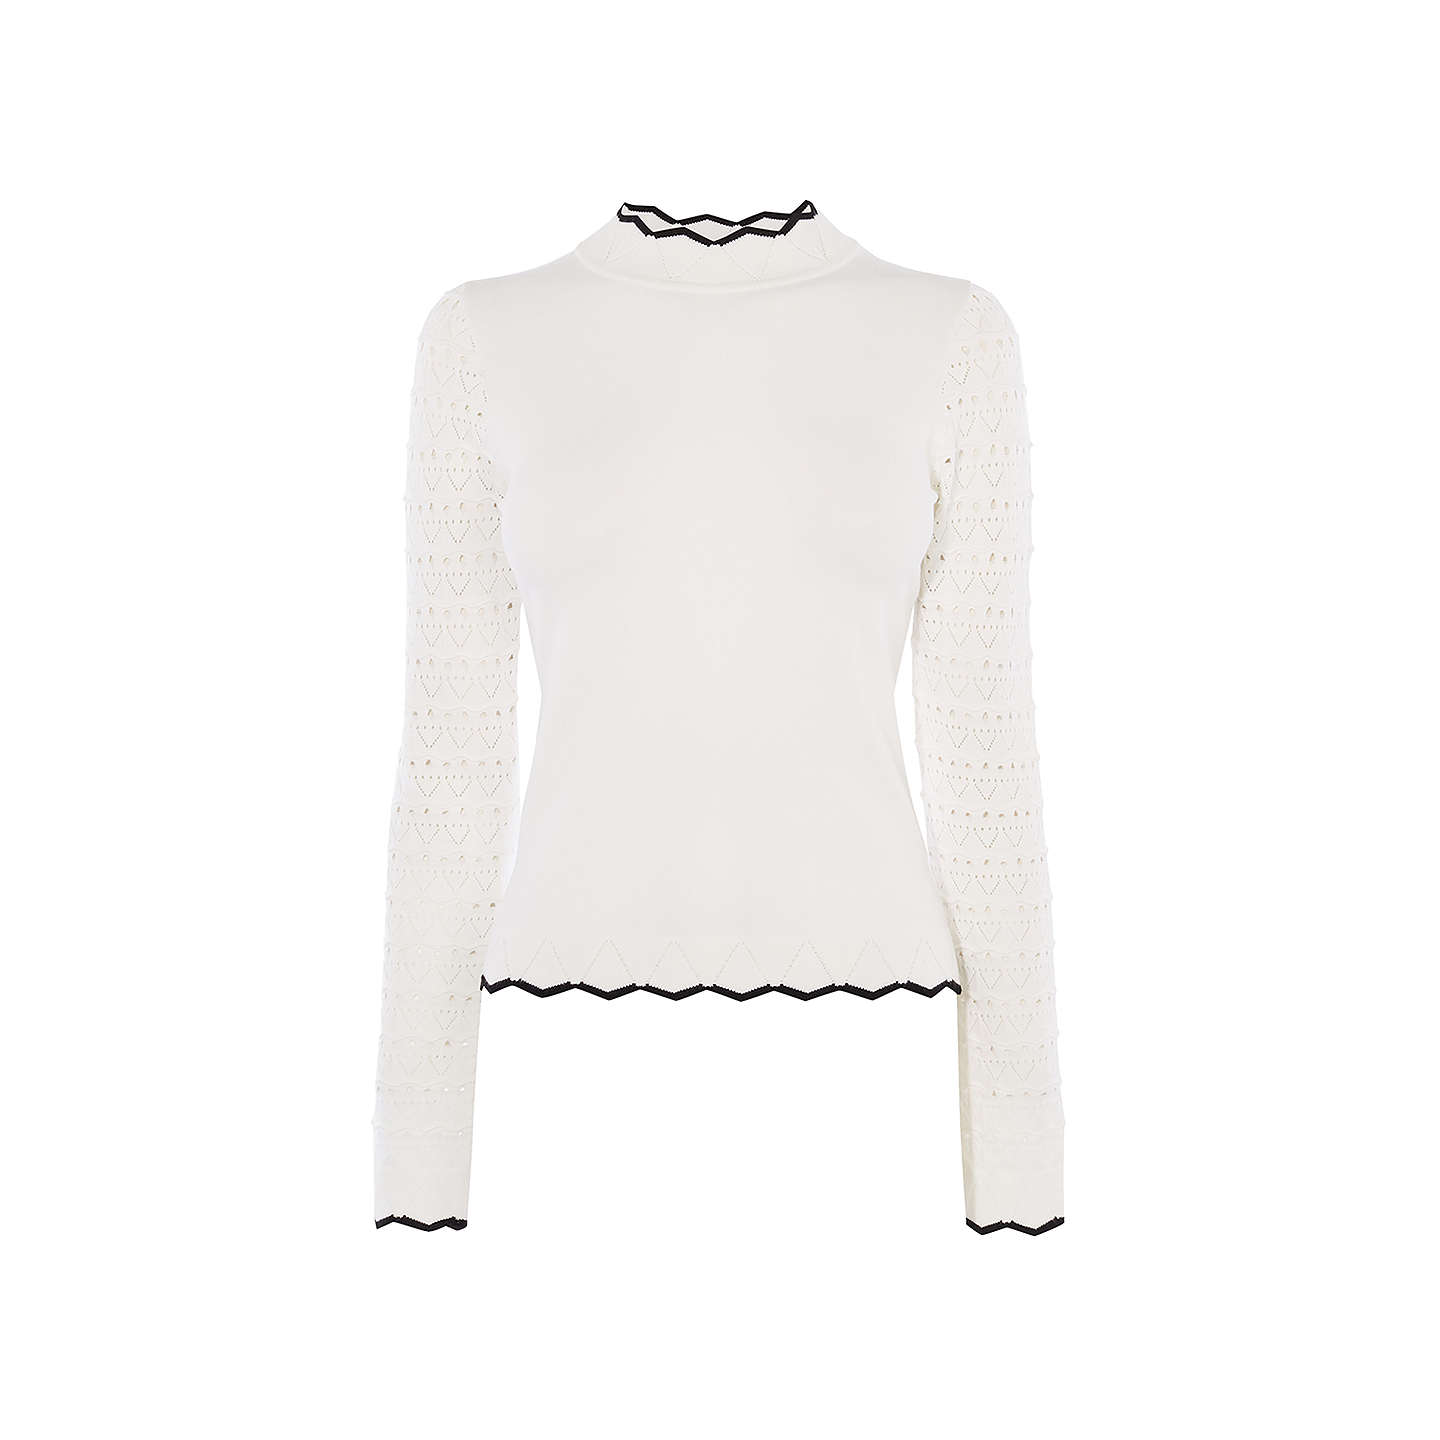 BuyKaren Millen Fitted Knit Jumper, Ivory, XS Online at johnlewis.com